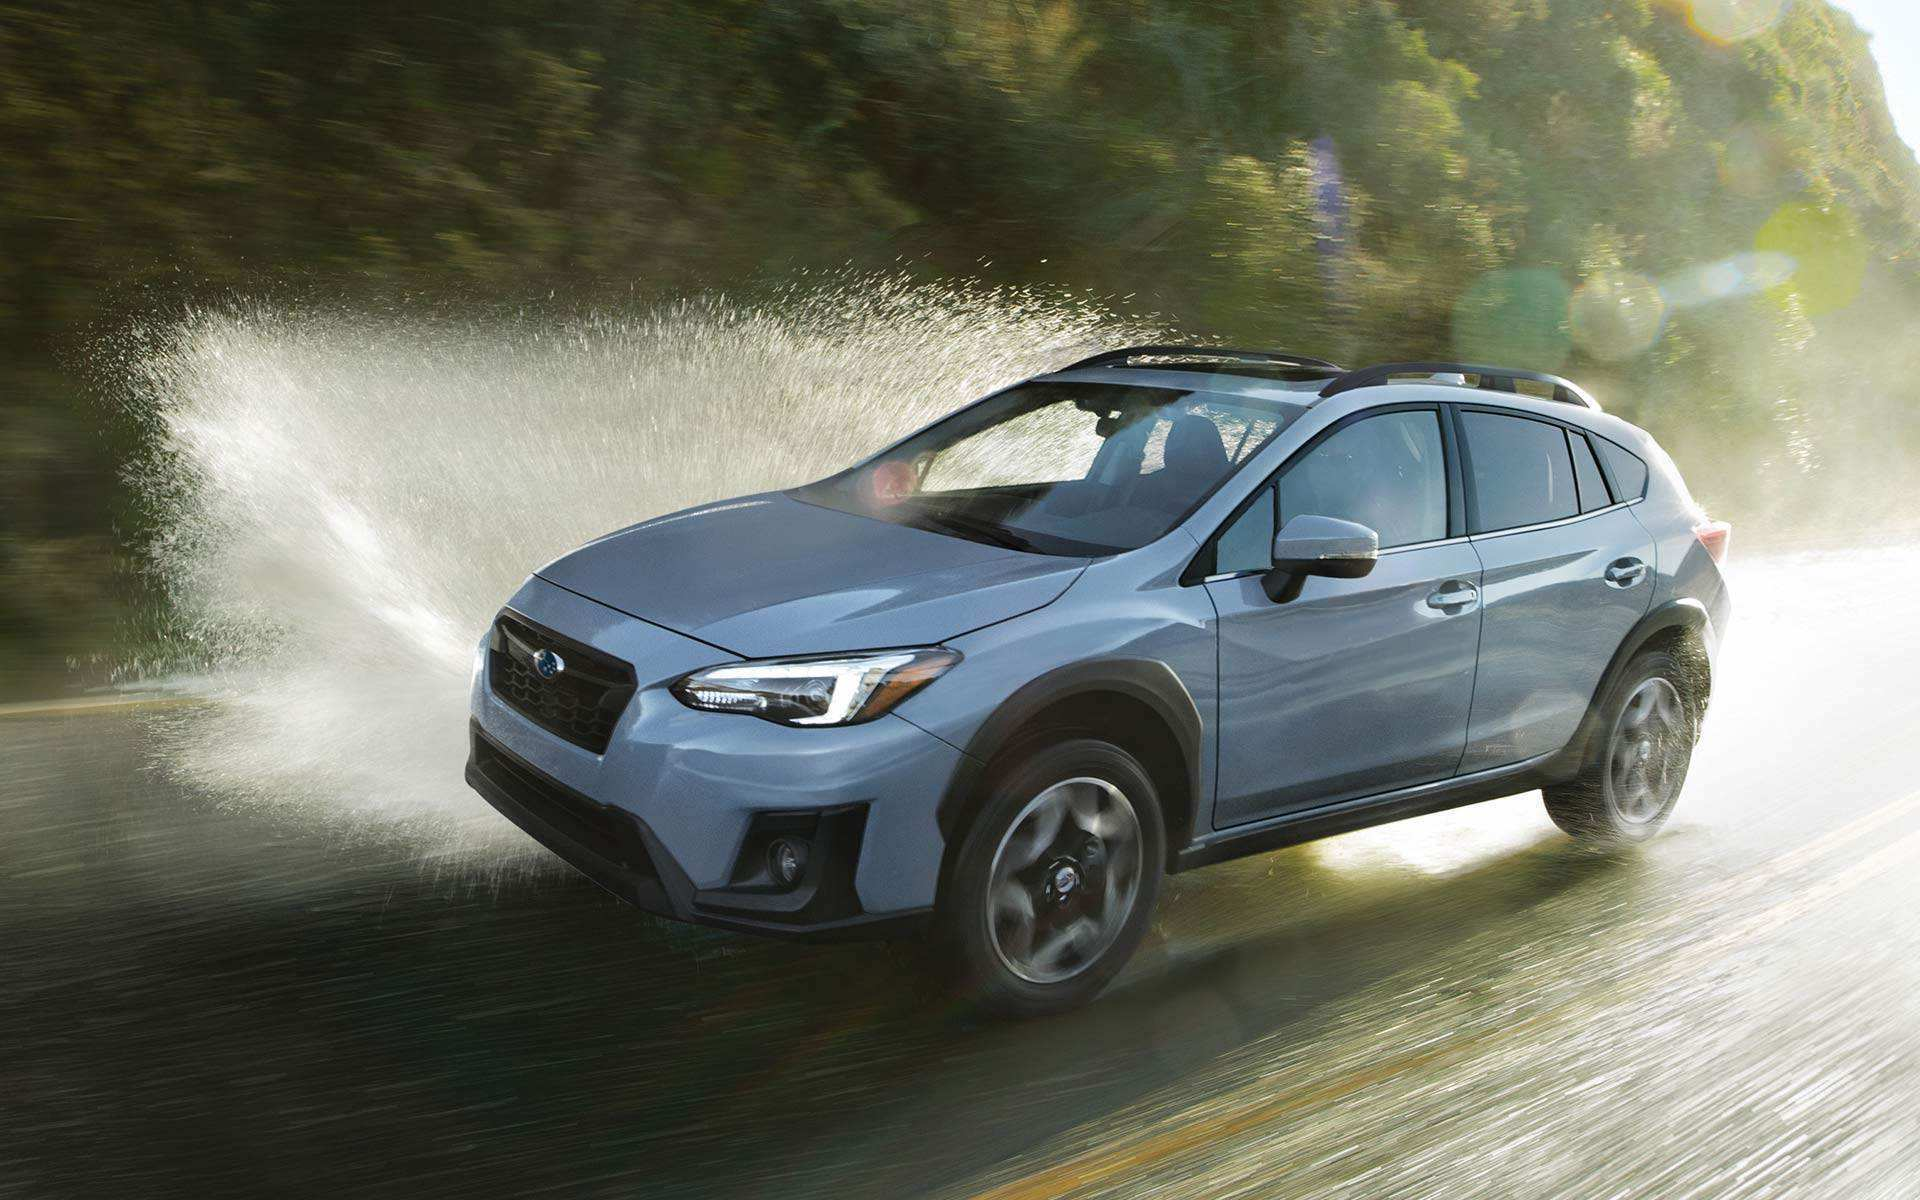 67 Concept of The Subaru Outback 2019 Review Rumor Images with The Subaru Outback 2019 Review Rumor